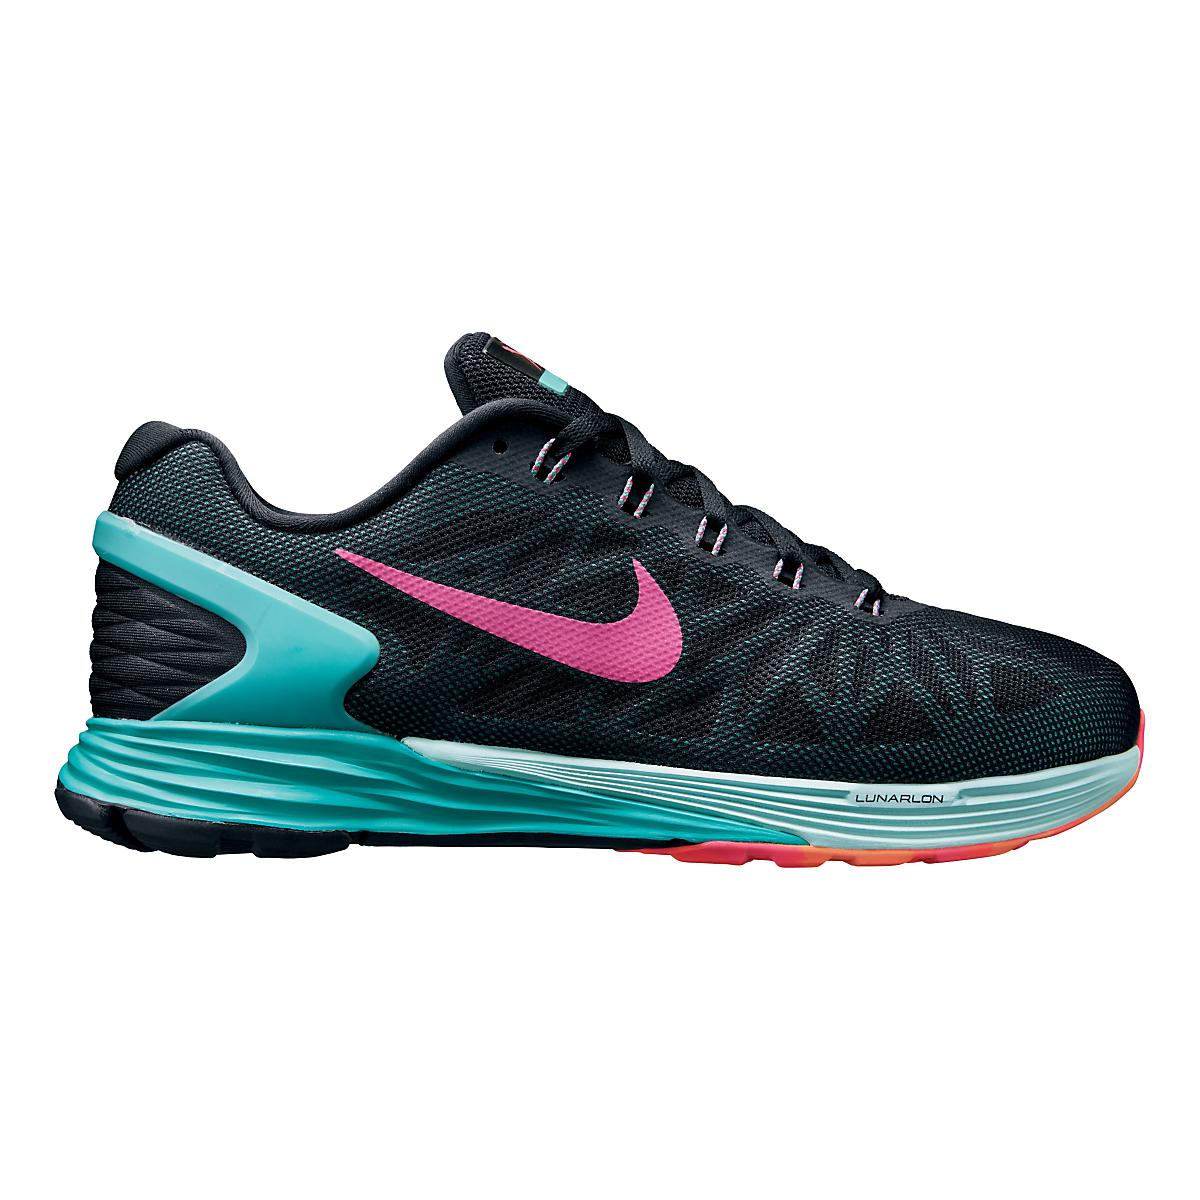 af62bfe9a13 Nike LunarGlide 6 Ladies Running Shoes Womens Nike LunarGlide 6 Running Shoe  at Road Runner Sports ...